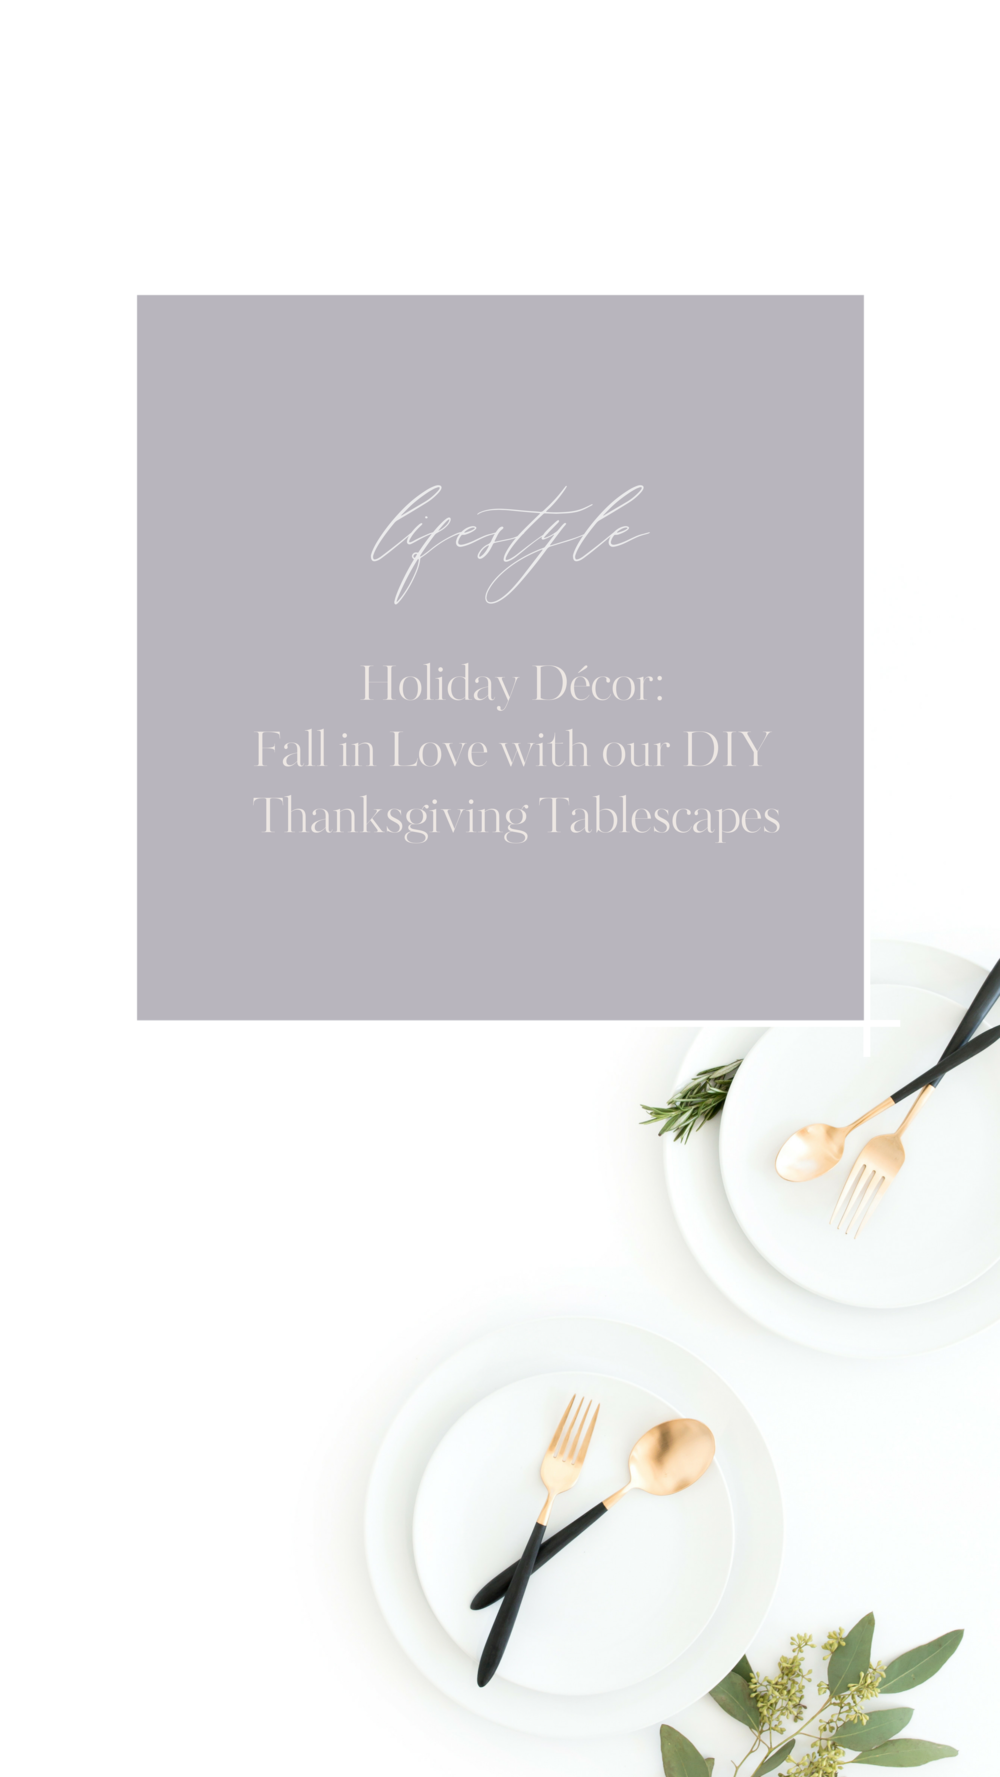 Holiday Décor_ Fall in Love with our DIY Thanksgiving Tablescapes.png